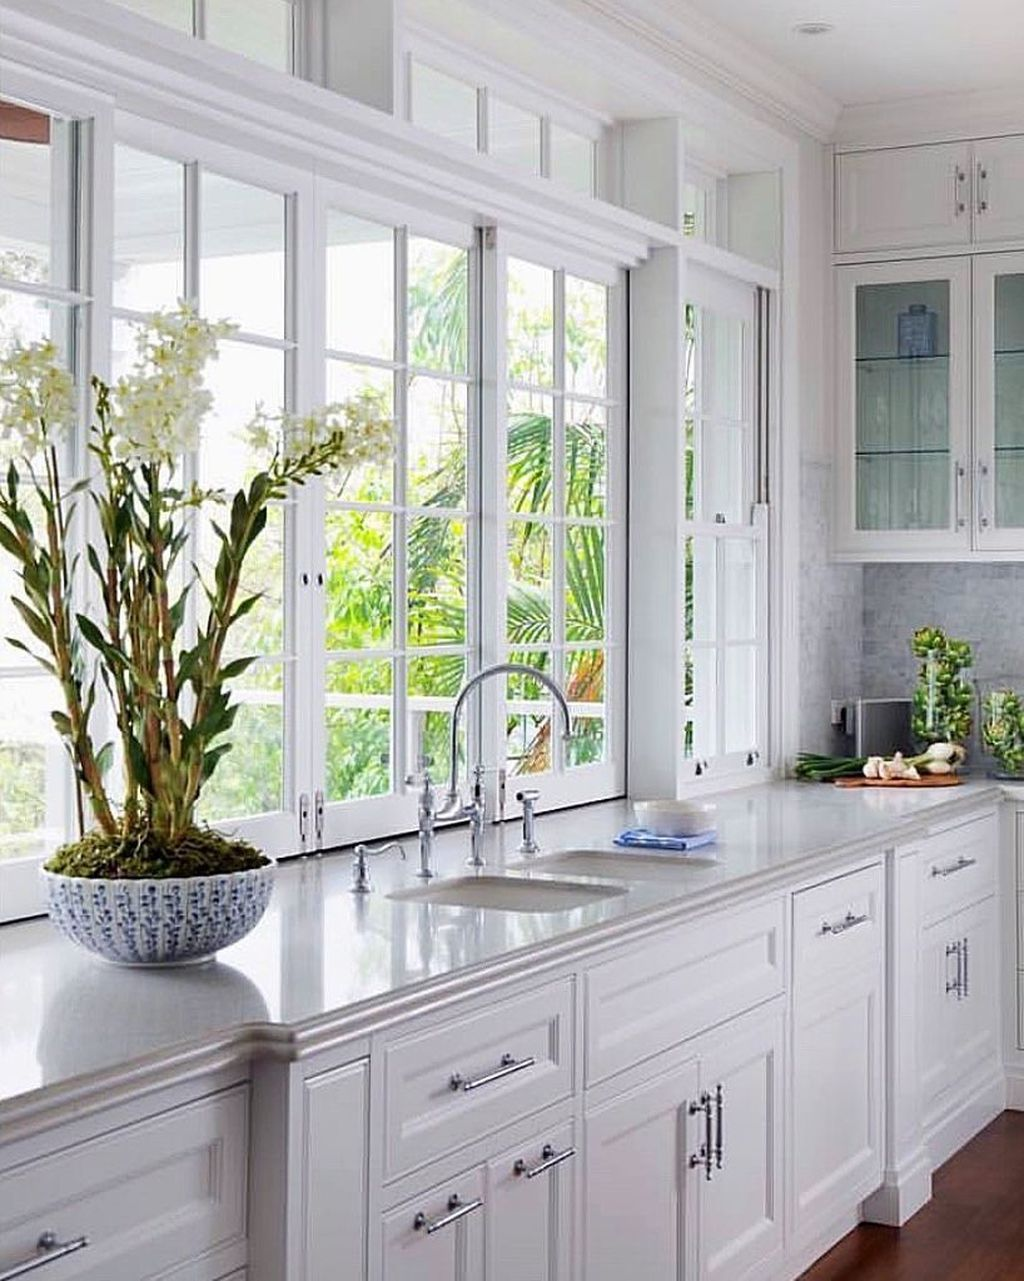 9+ Gorgeous Kitchen Windows Ideas That Are Perfect For Your ...